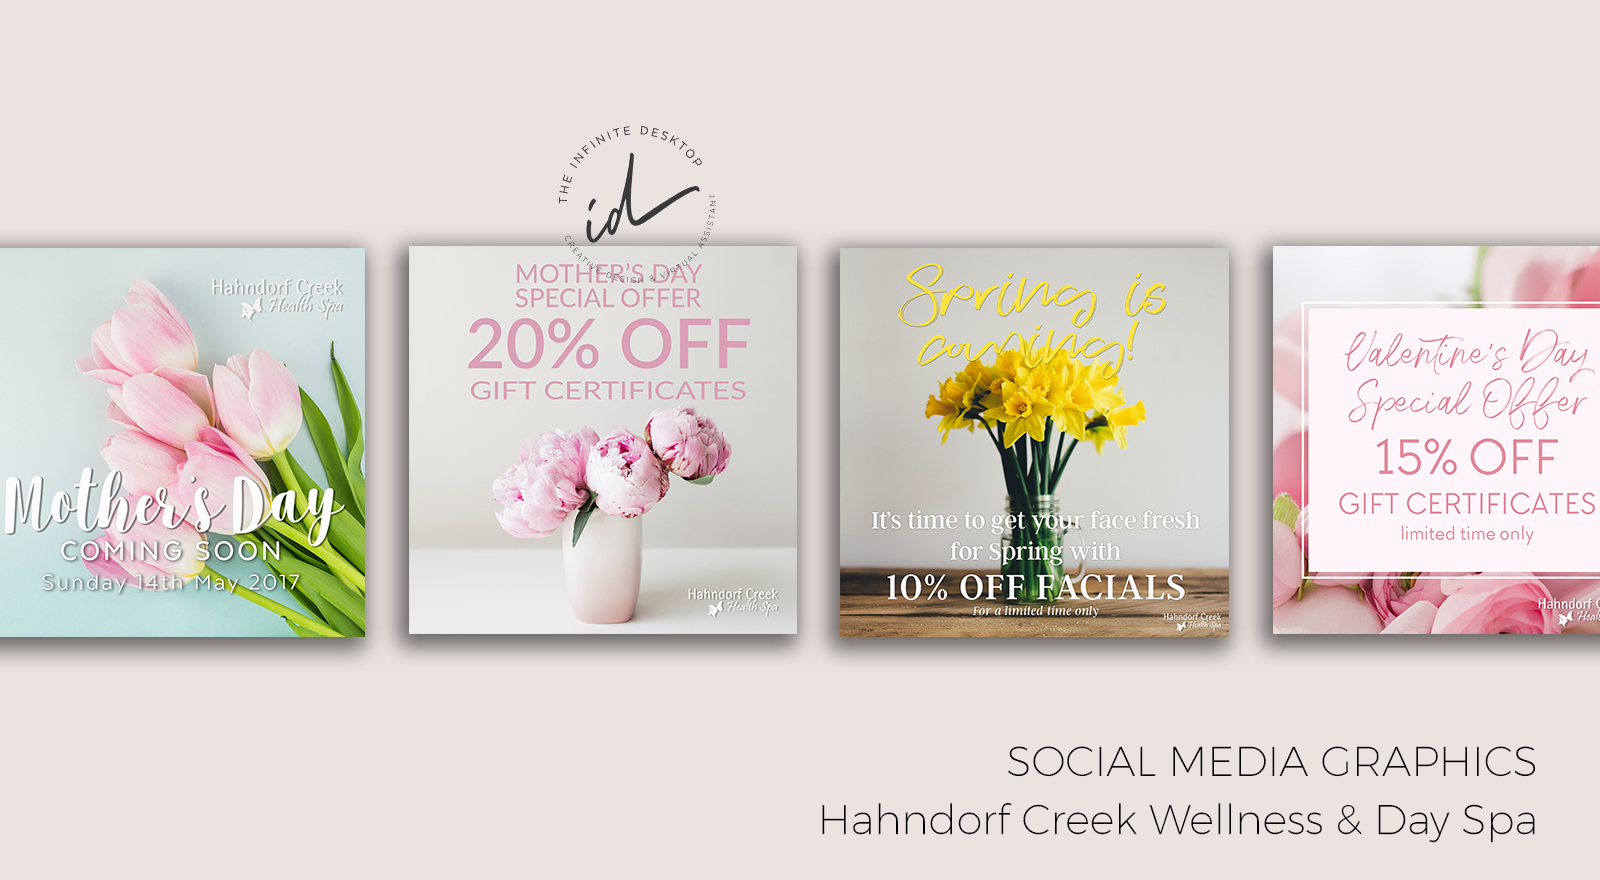 social-media-hahndorf-creek-spa-promos